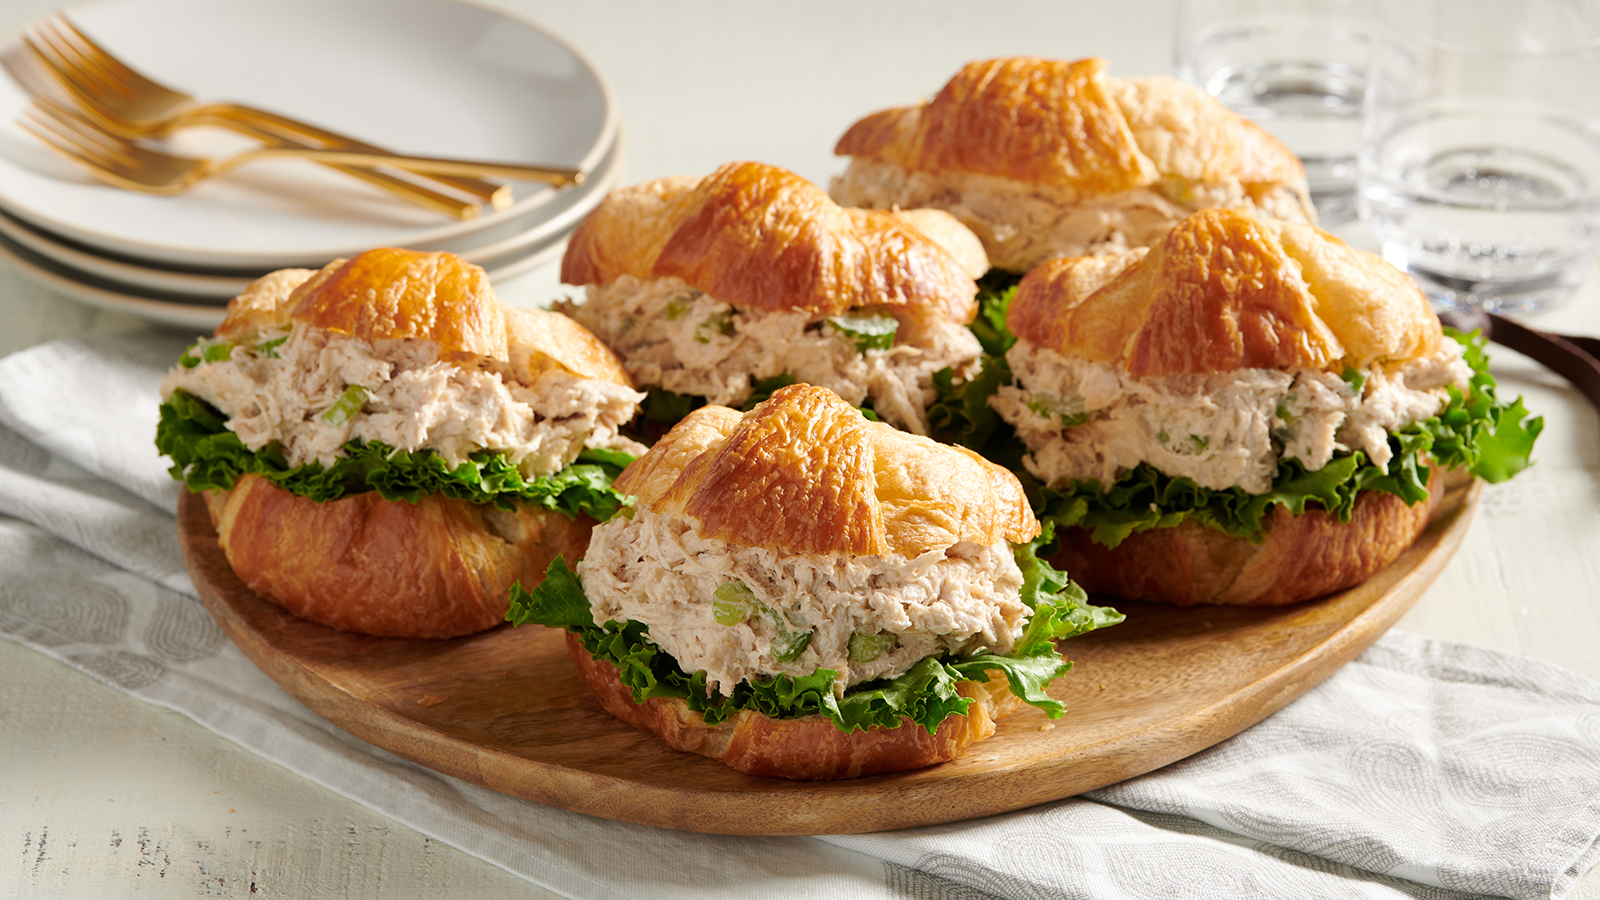 Chicken Salad and Croissants